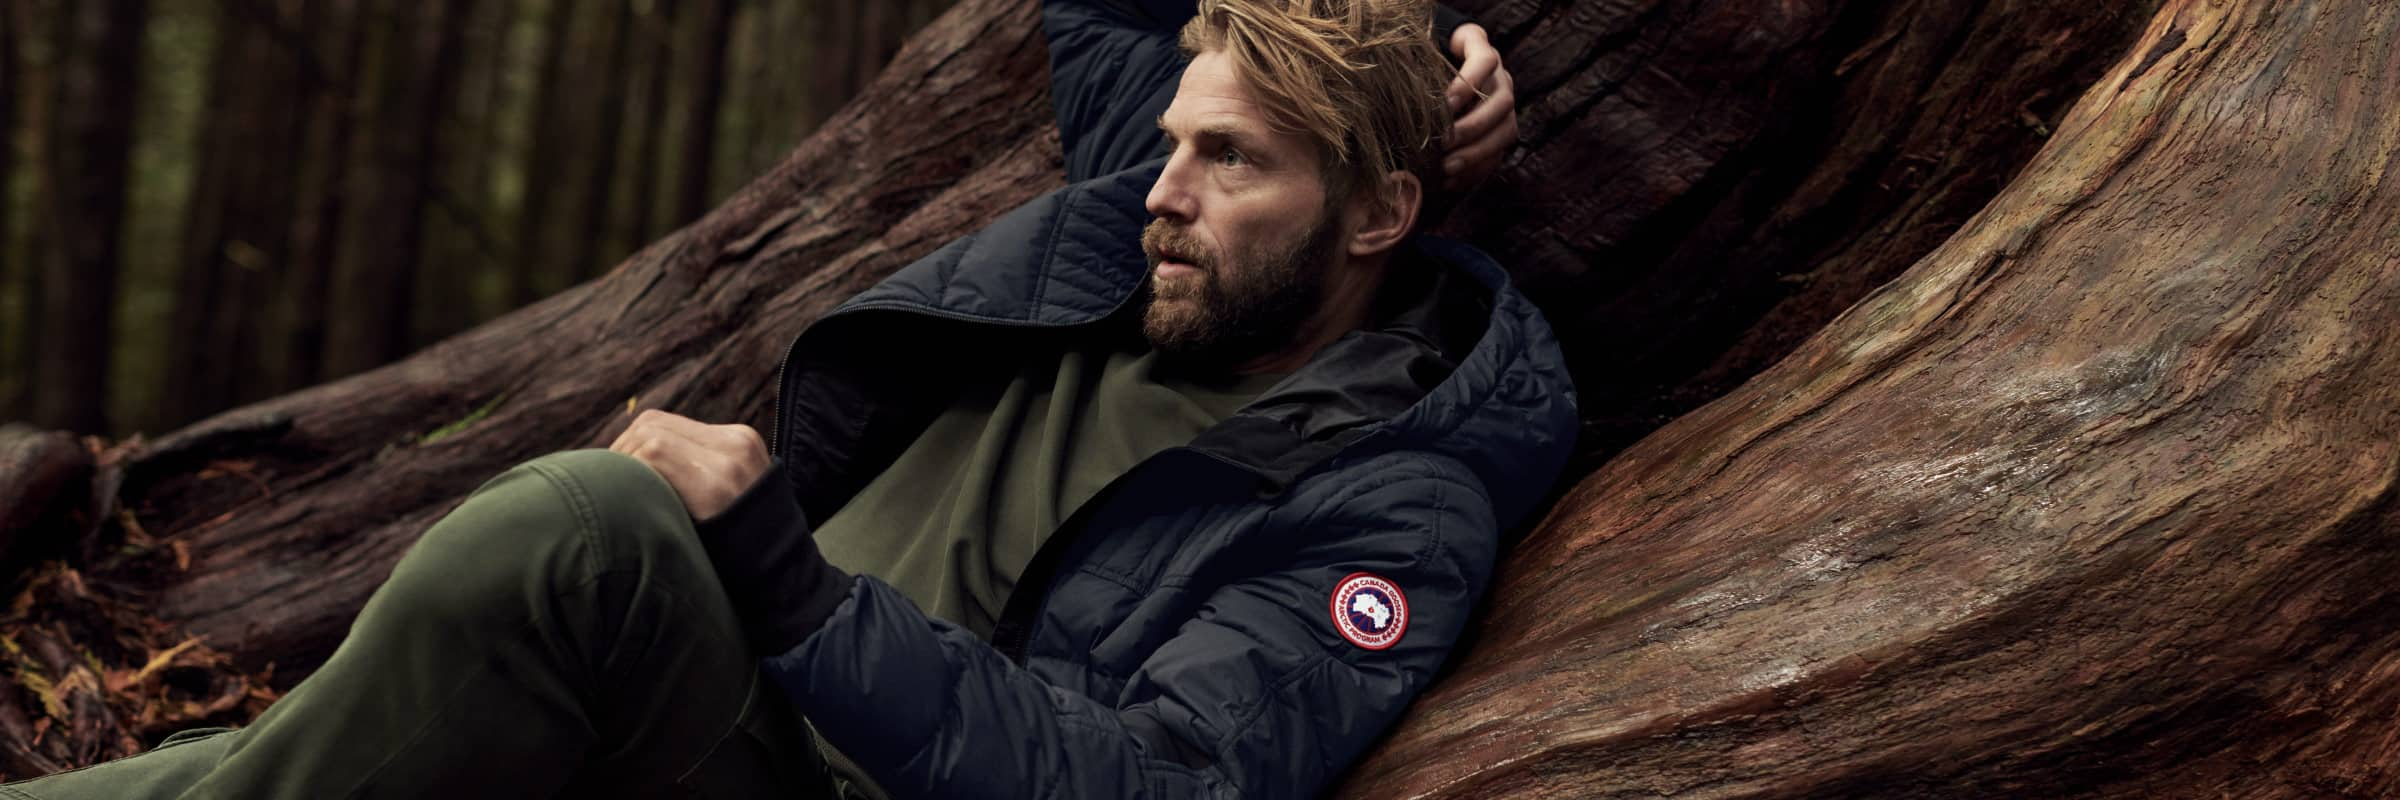 Canada Goose. Discover the Canada Goose 2018 Spring/Summer Collection